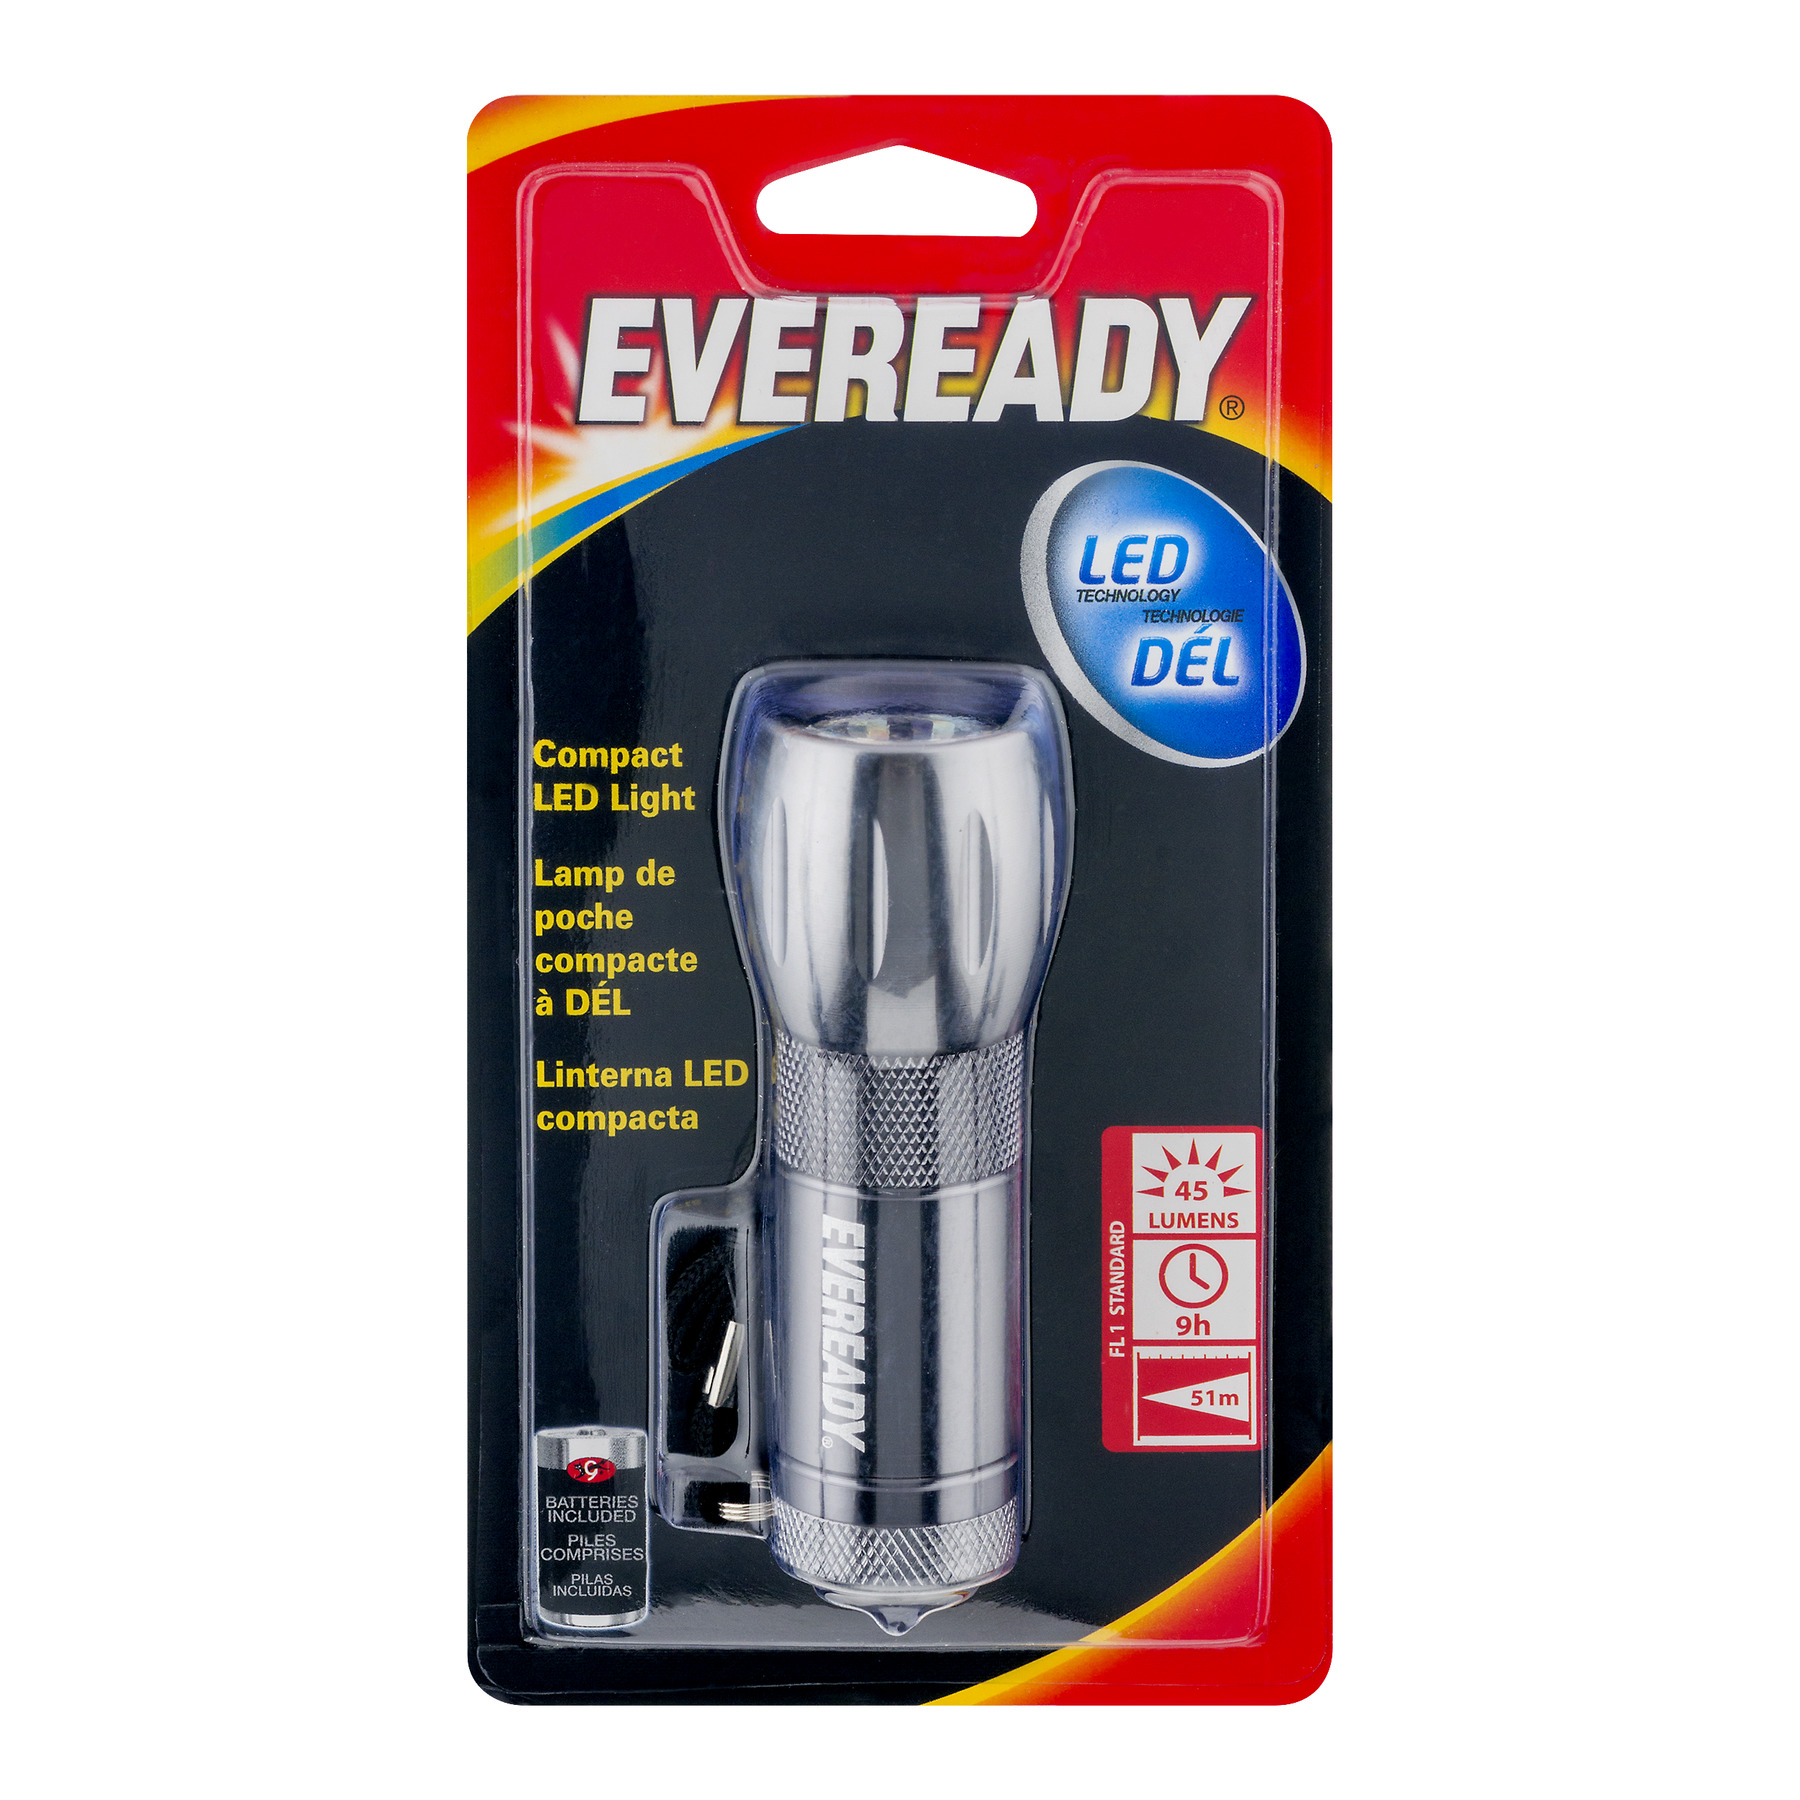 Eveready Compact LED Light, 1.0 CT